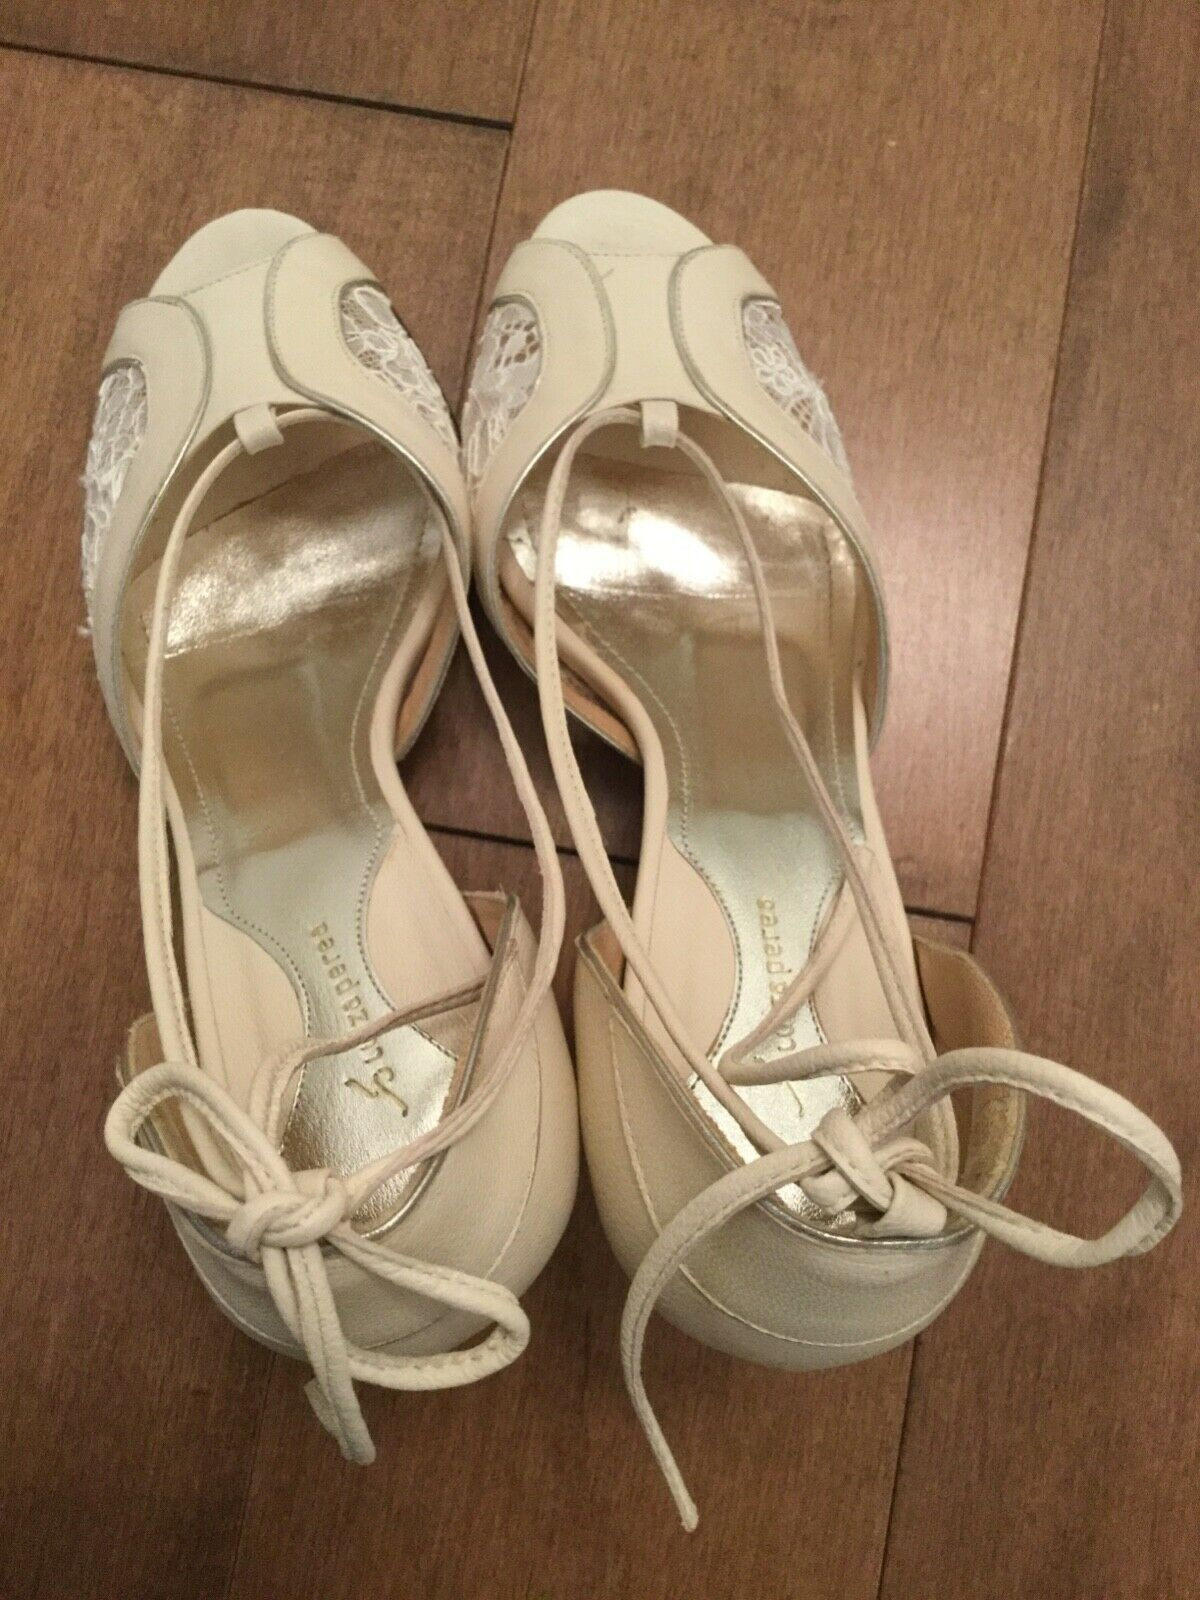 Anthropologie Ruiza Perea Lace Paneled Heels ERU 37 Made Made Made in Brazil worn once fcaf68